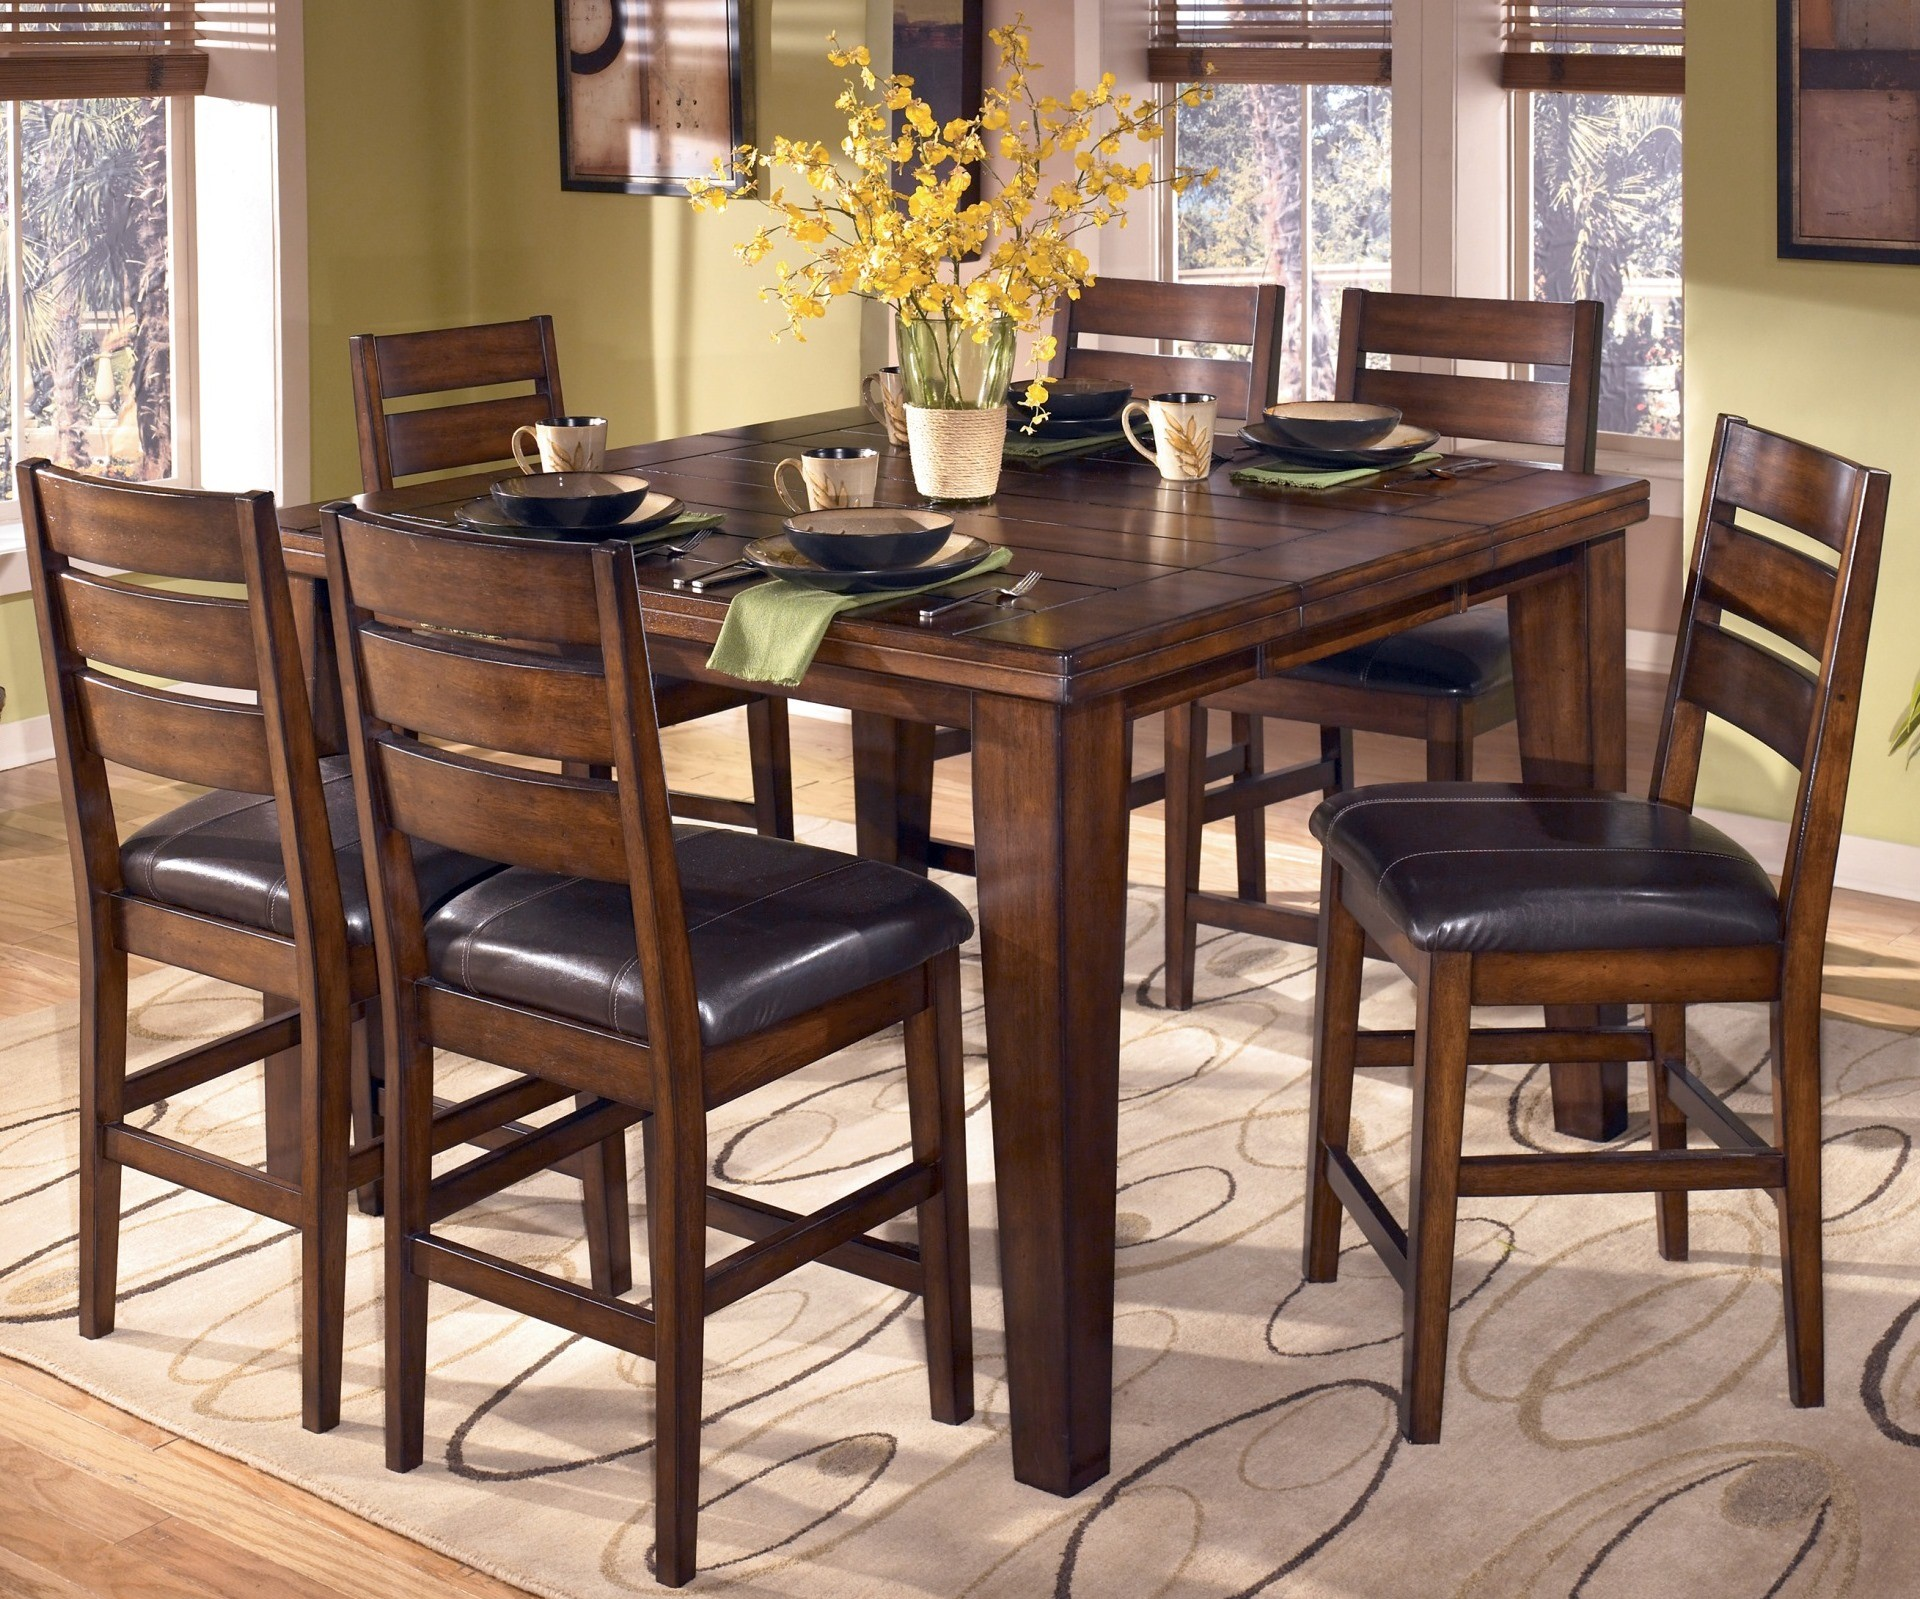 Ashley Furniture Table And Chairs Larchmont Pub Table Set From Ashley D442 32 Coleman